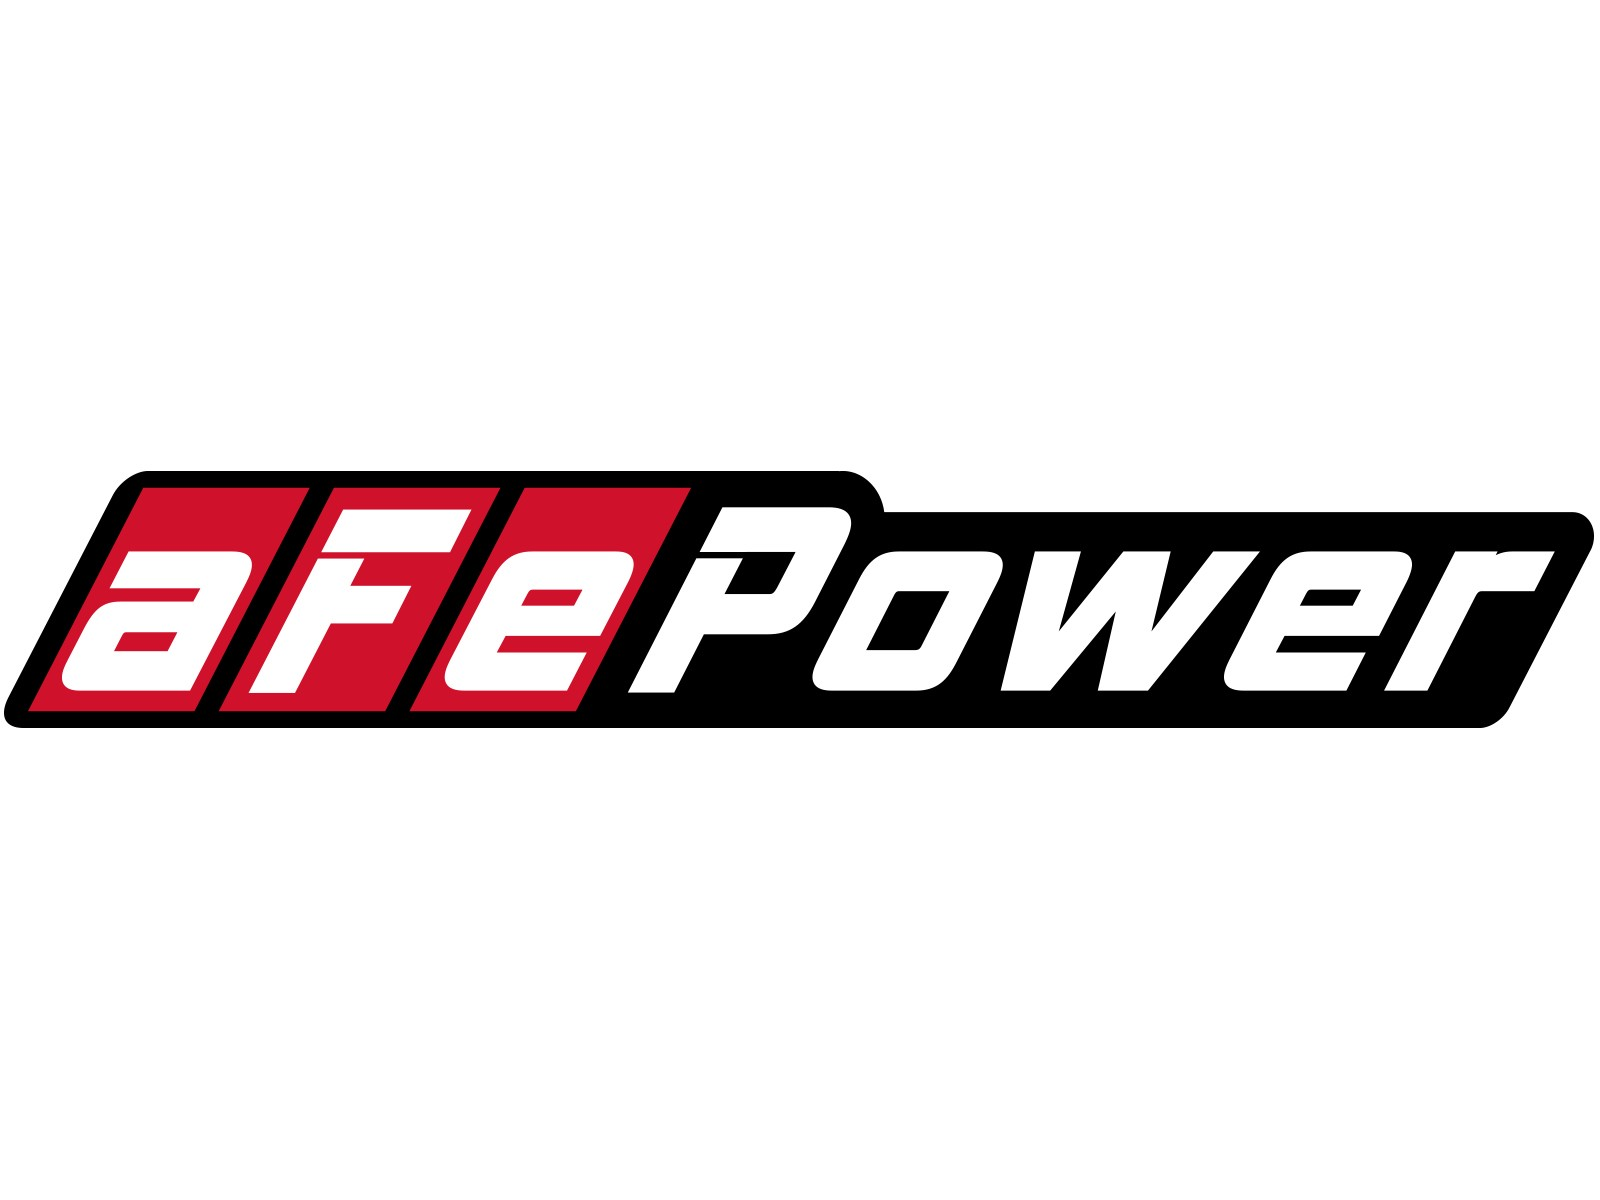 Afe power motorsports contingency sticker 11 x 1 1 2 in pair afe power